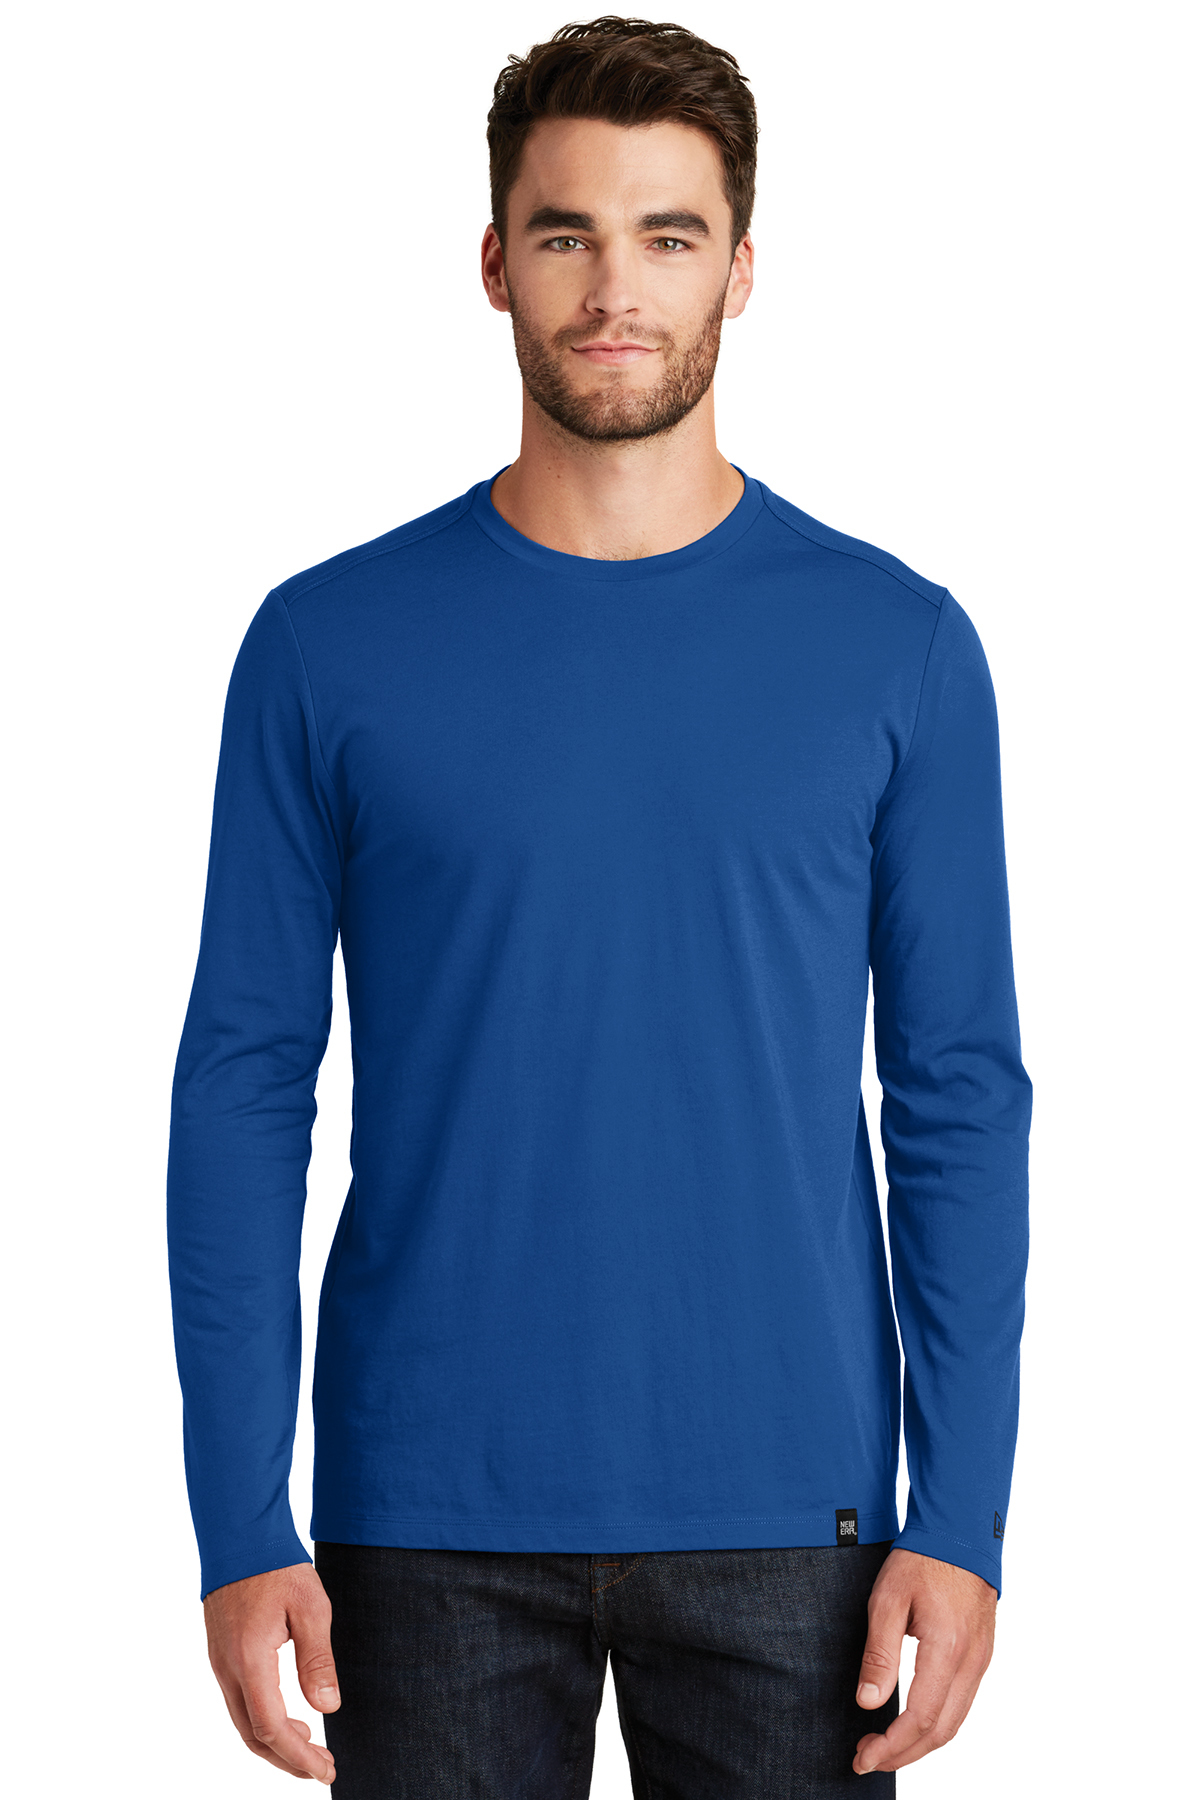 New Era NEA102 - Men's Heritage Blend Long Sleeve Crew ...